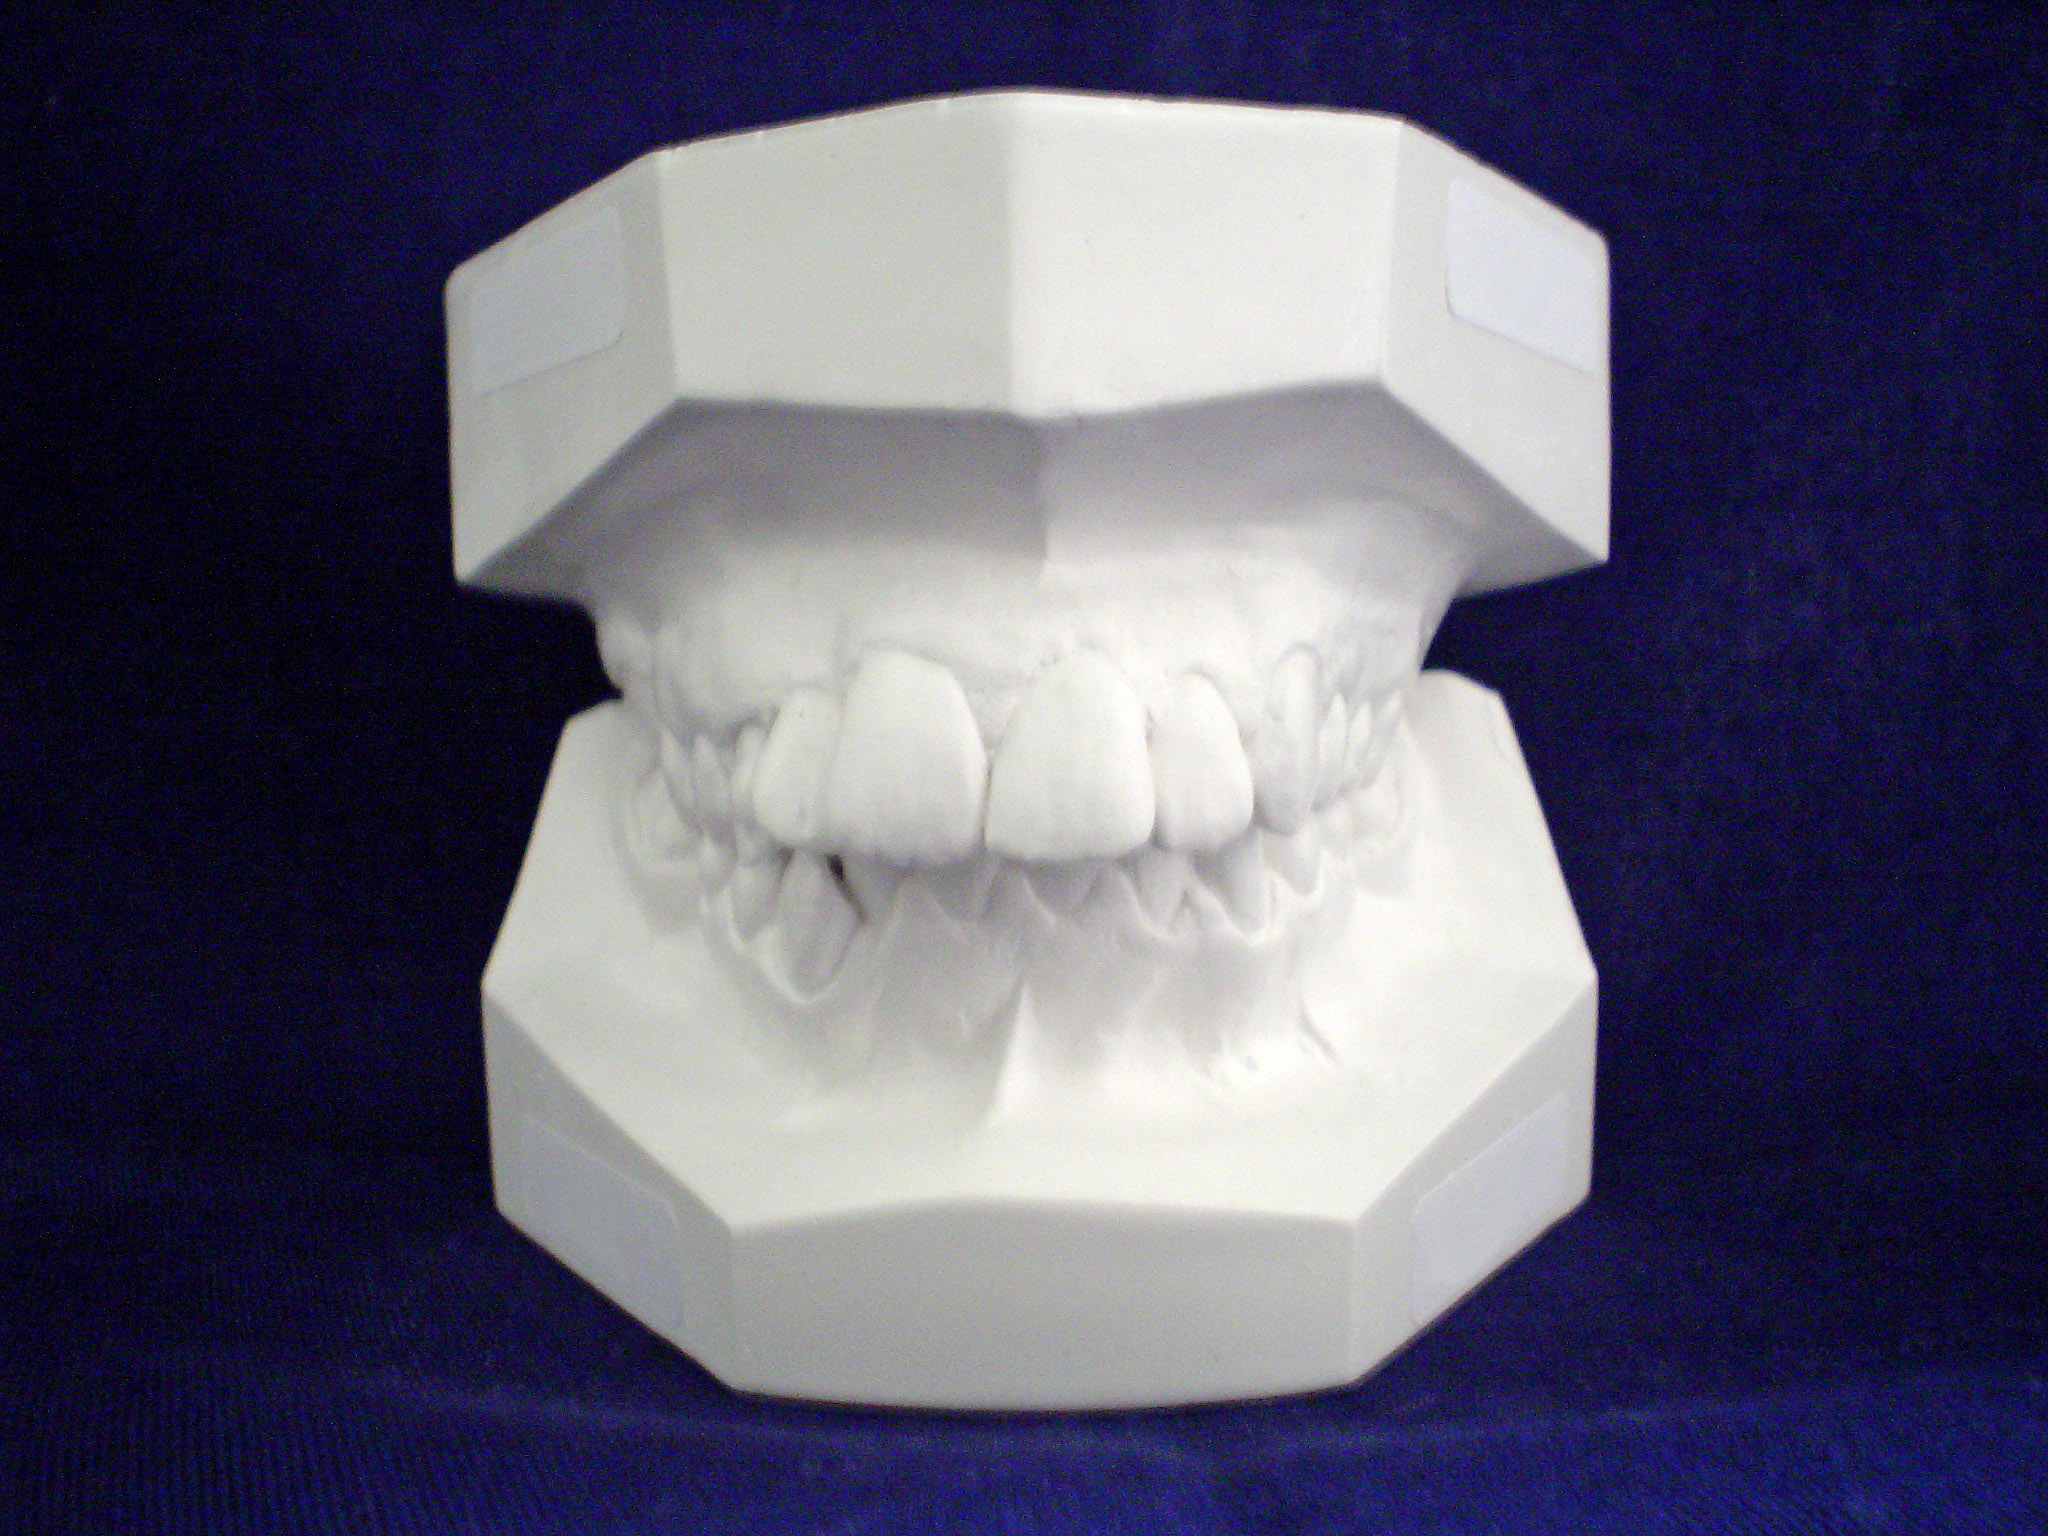 How much are porcelain veneers dazzling white teeth hq choosing a shade for teeth veneers solutioingenieria